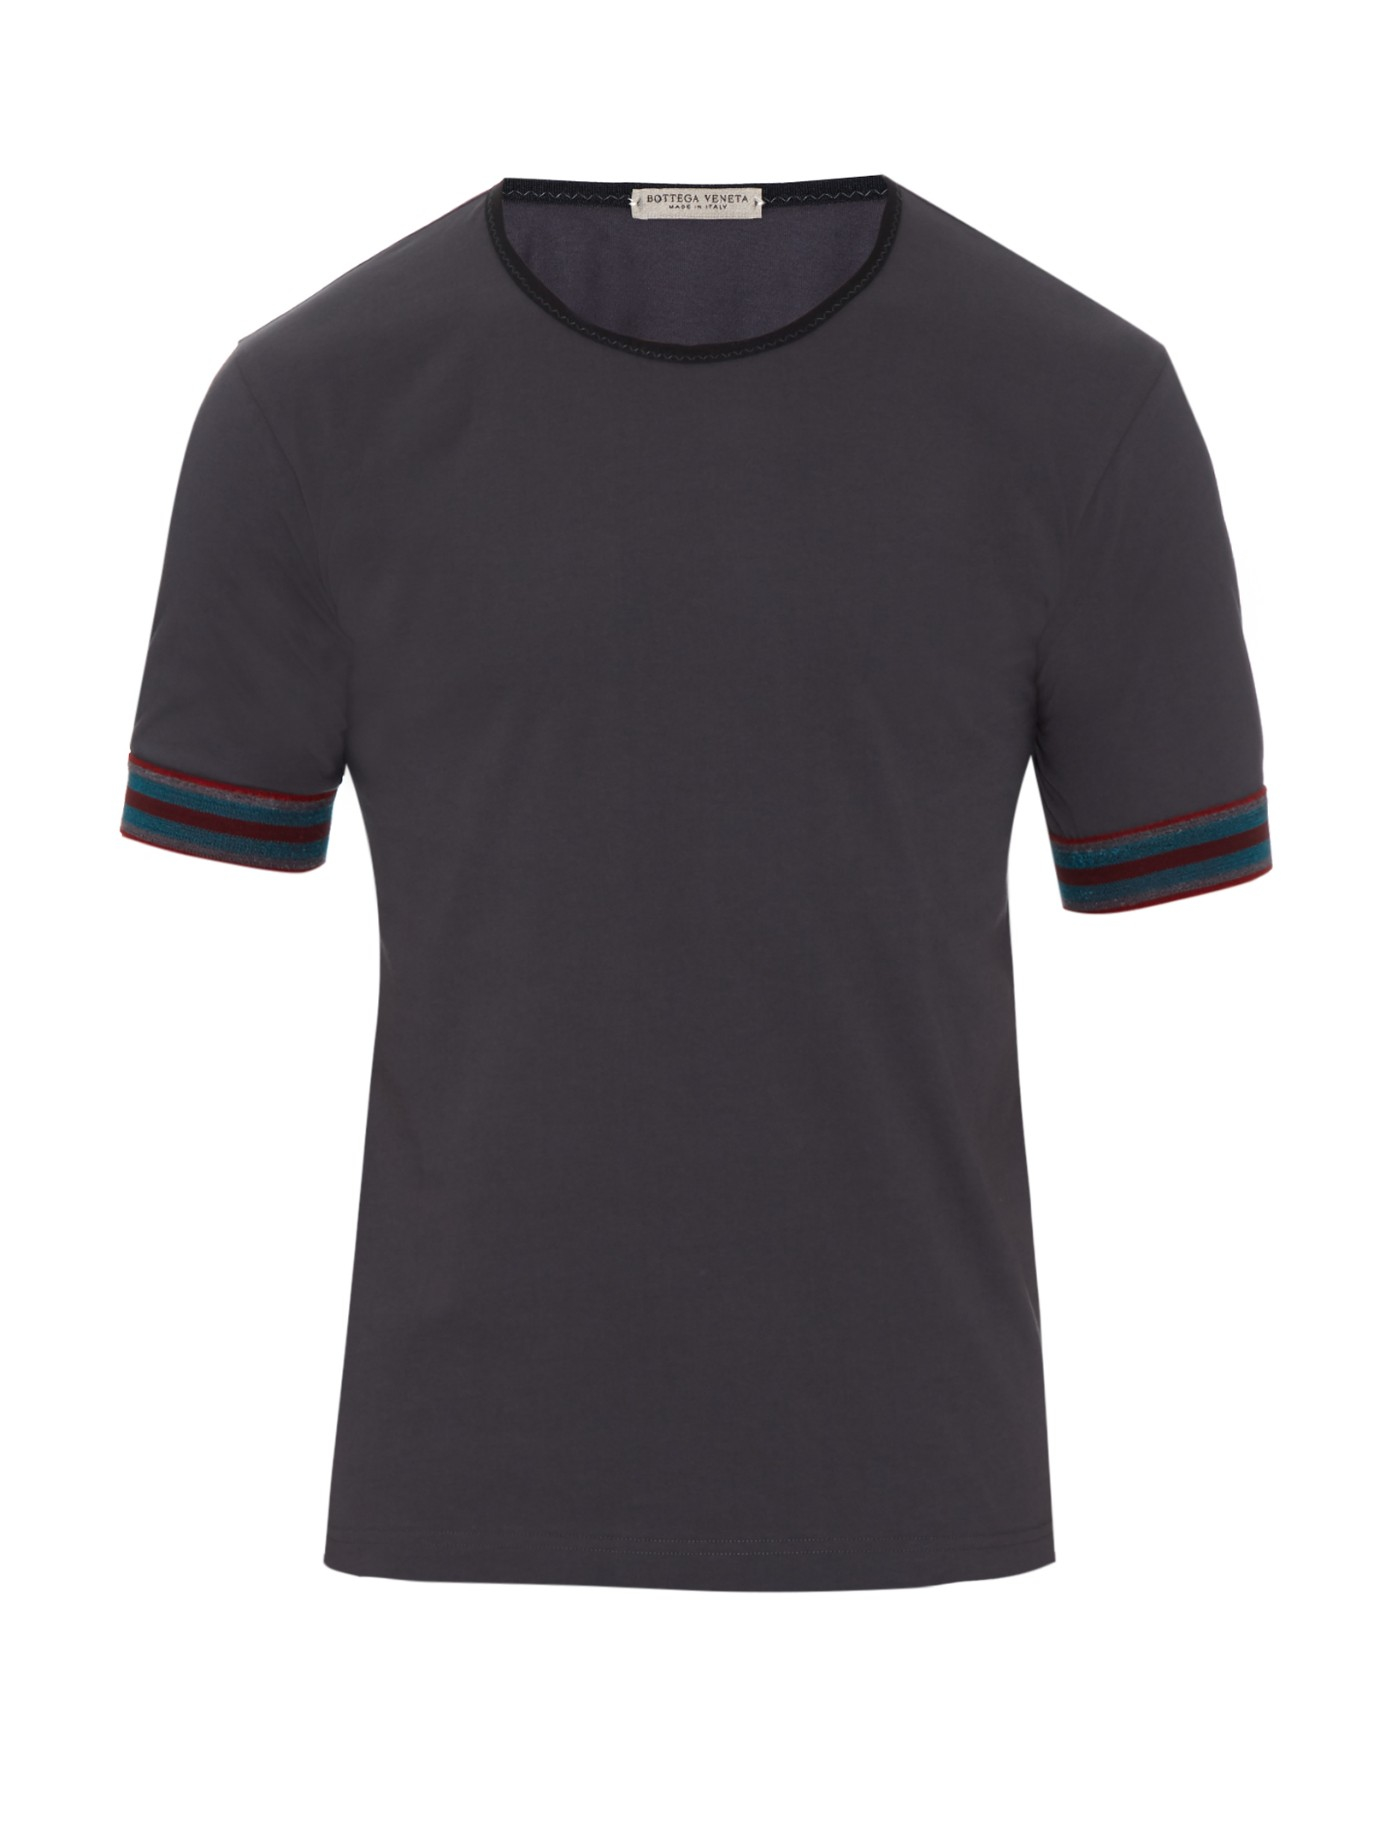 Bottega veneta striped cuff cotton t shirt in gray for men for Bottega veneta t shirt